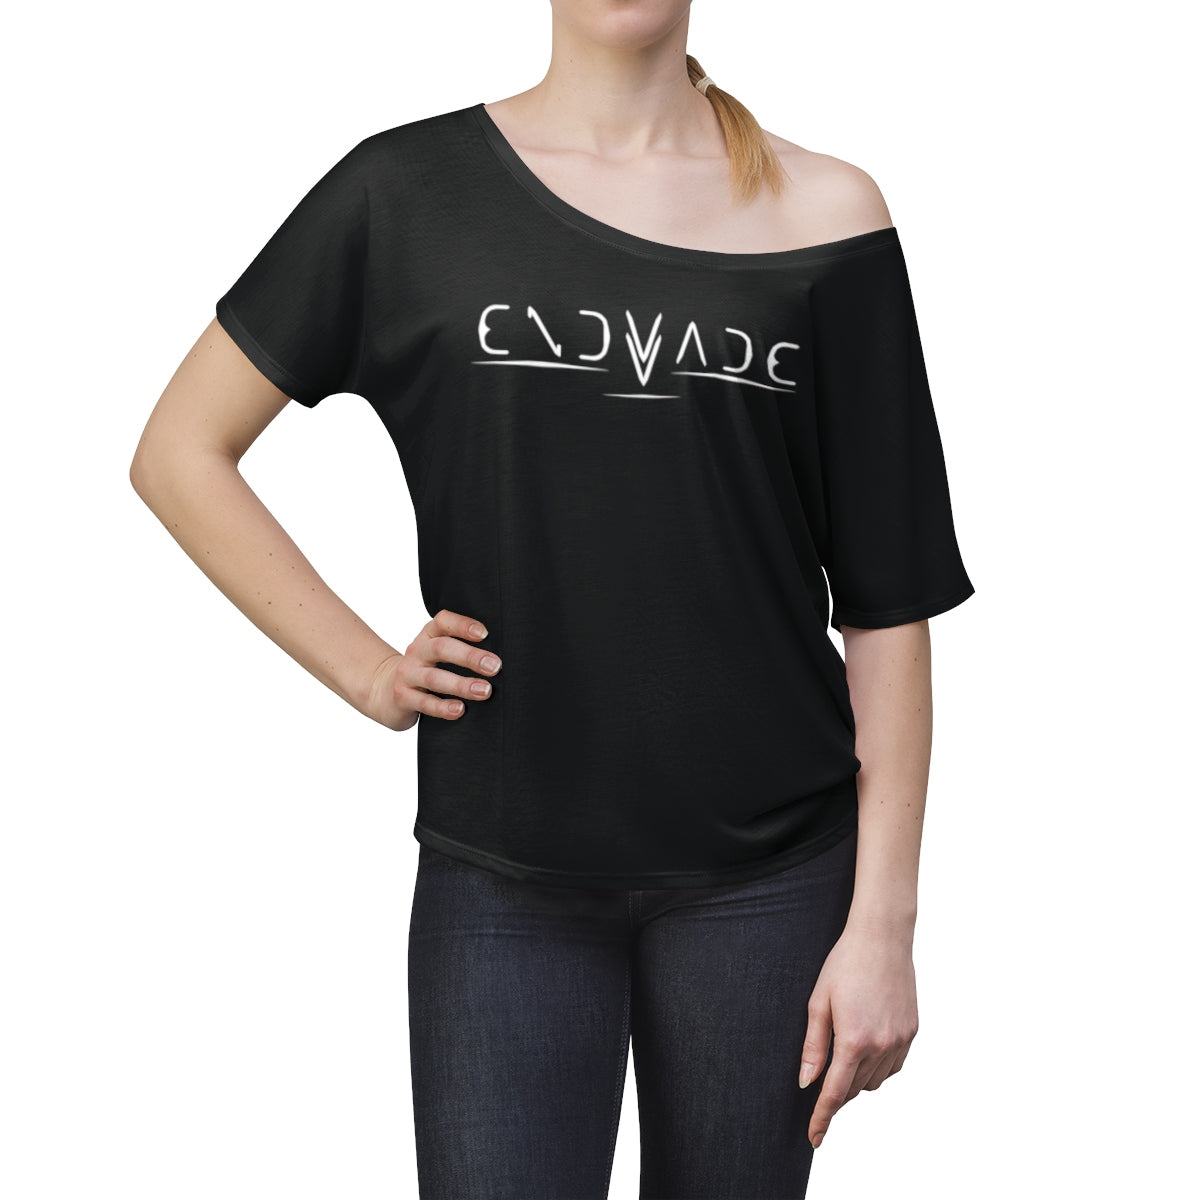 Endvade Women's Slouchy top